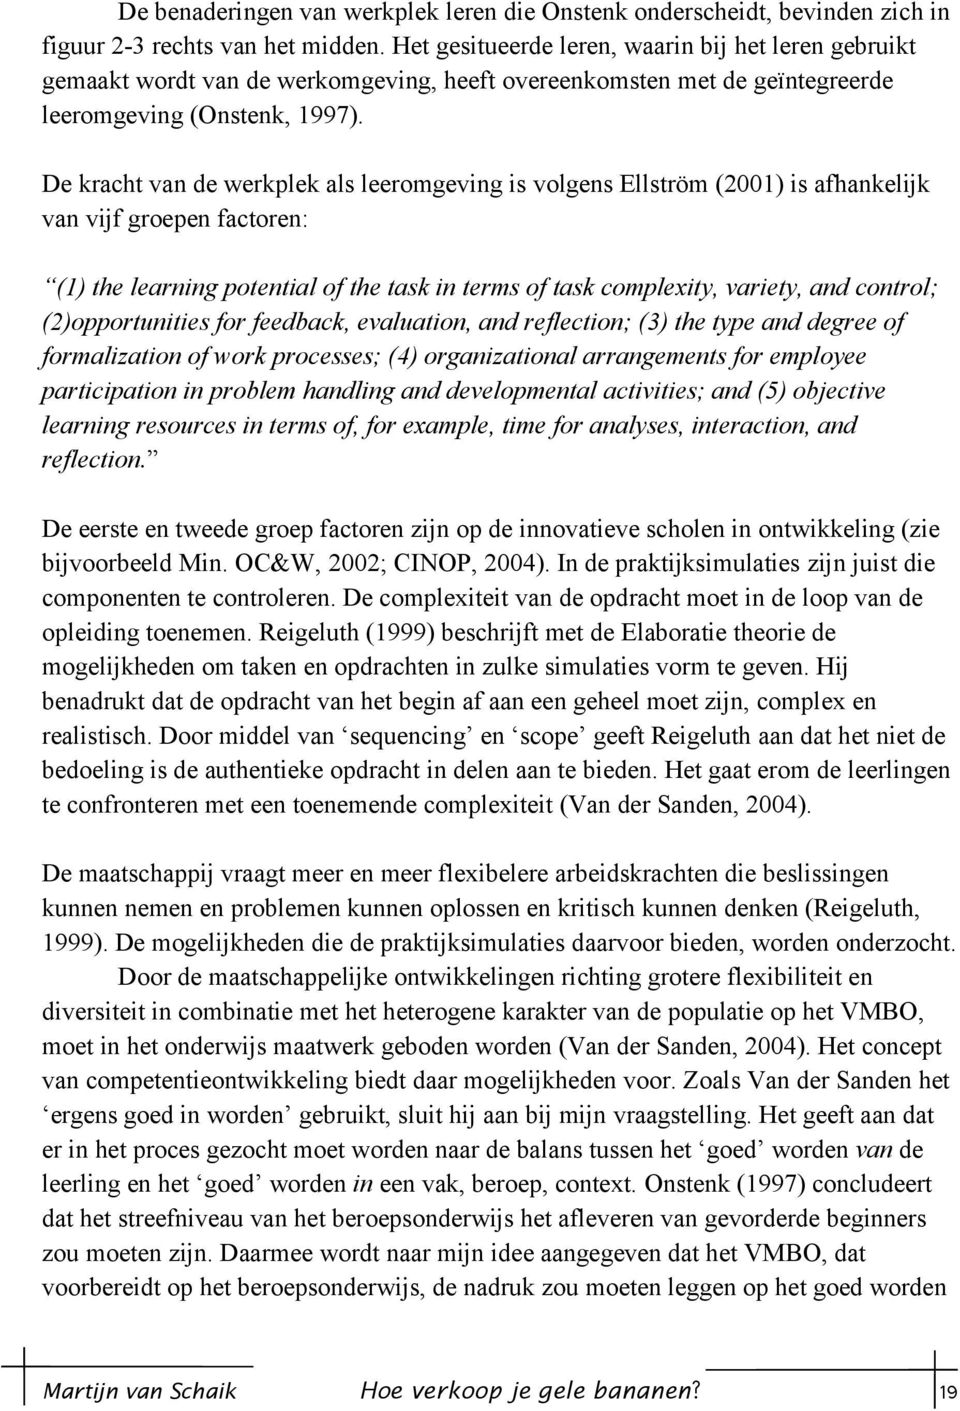 De kracht van de werkplek als leeromgeving is volgens Ellström (2001) is afhankelijk van vijf groepen factoren: (1) the learning potential of the task in terms of task complexity, variety, and